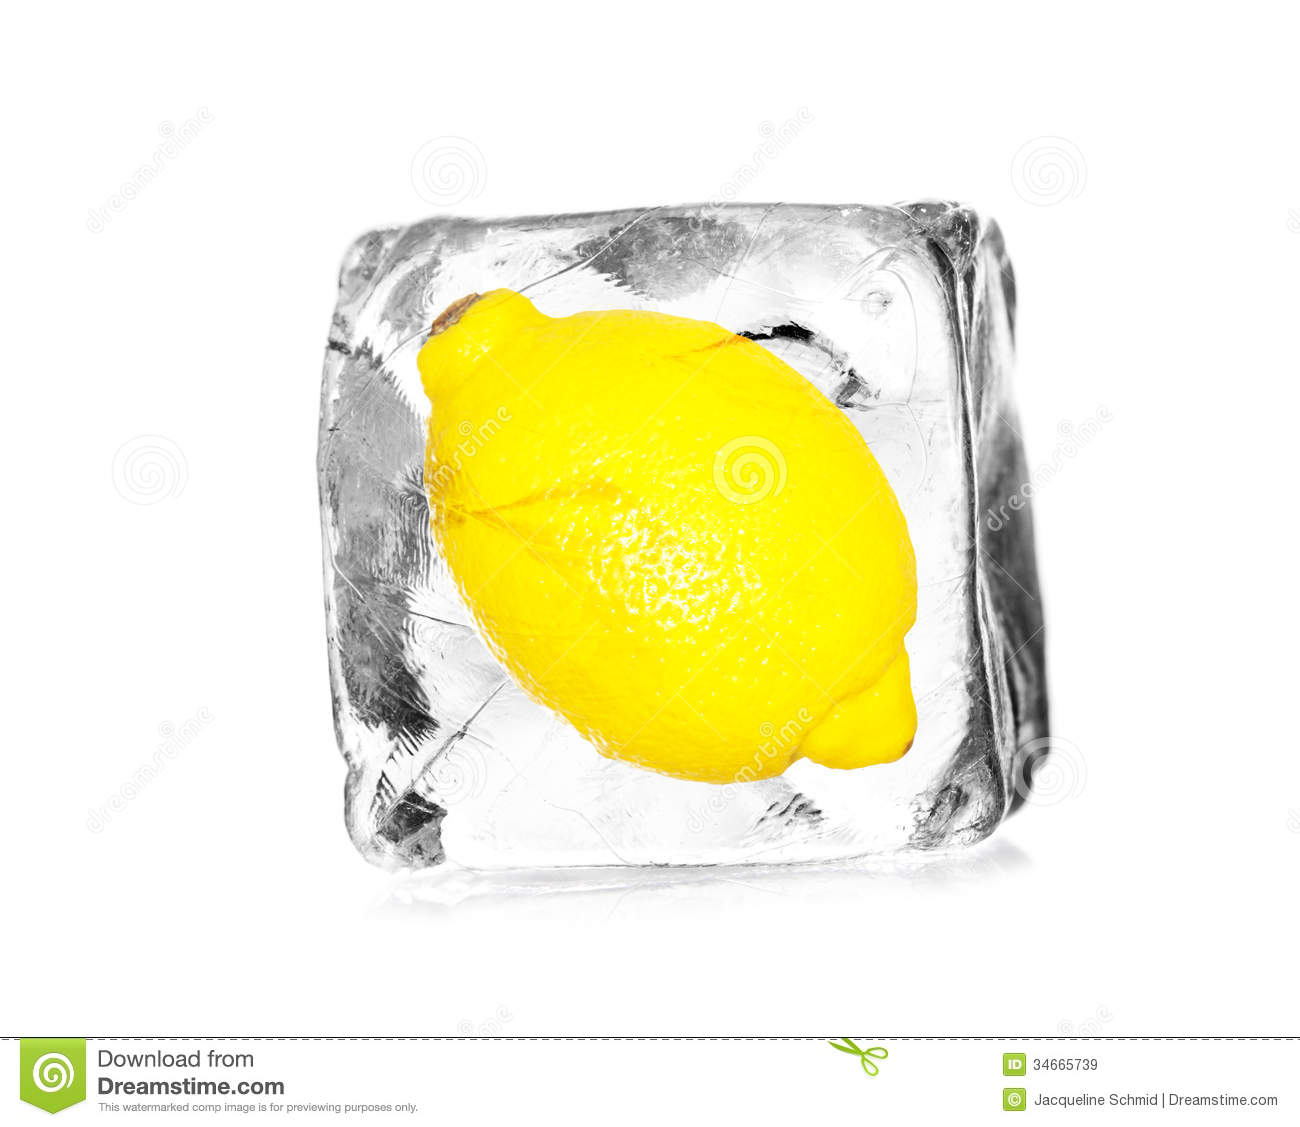 lemon ice only you: